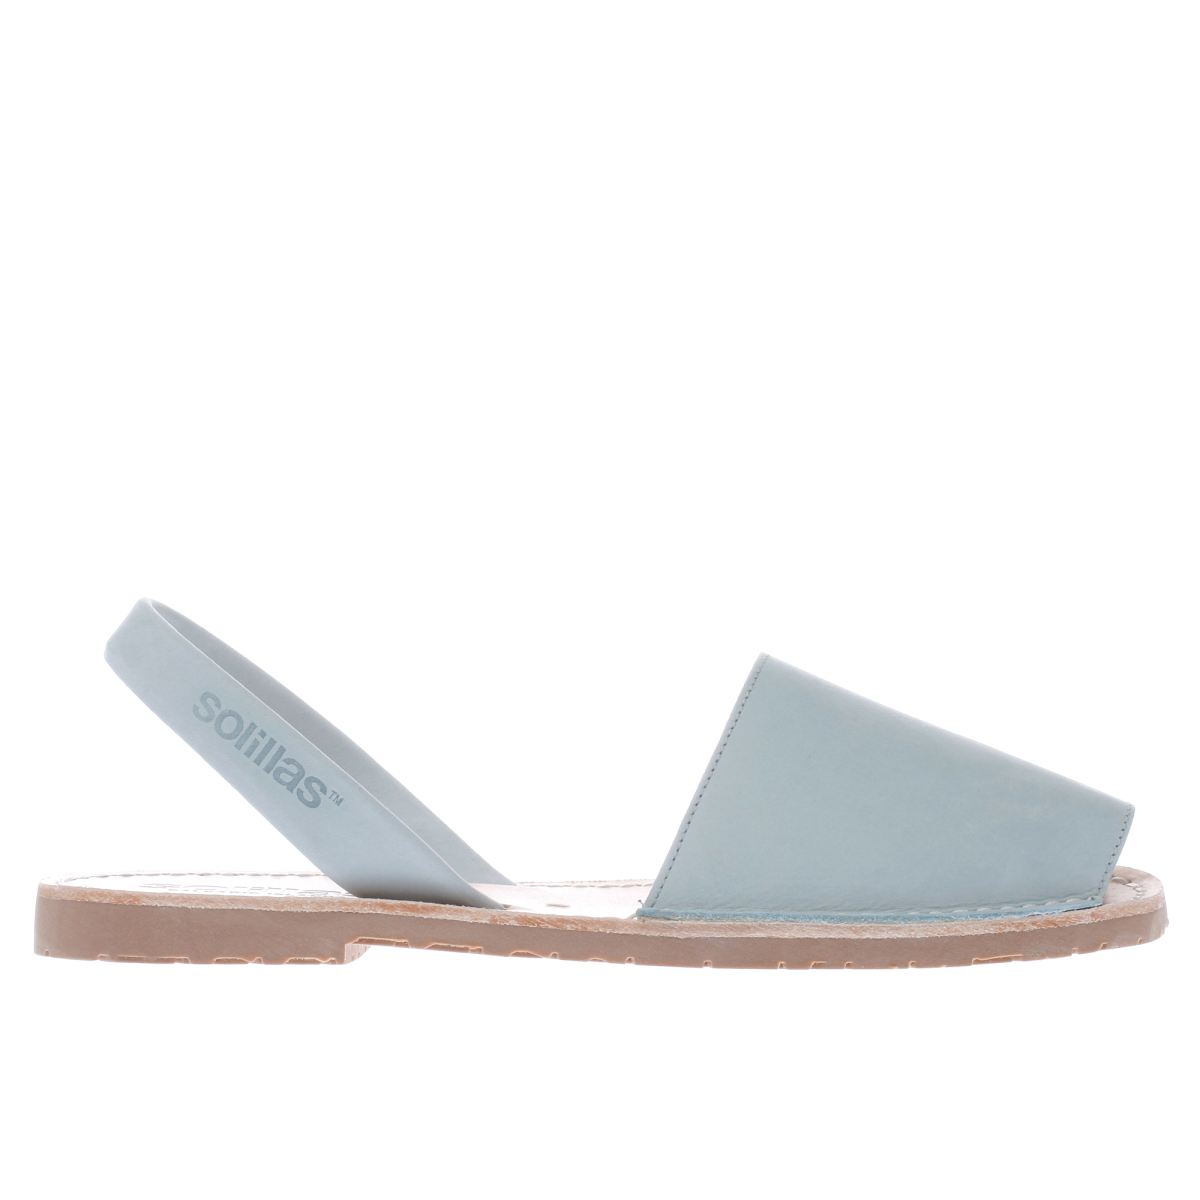 solillas pale blue original sandals